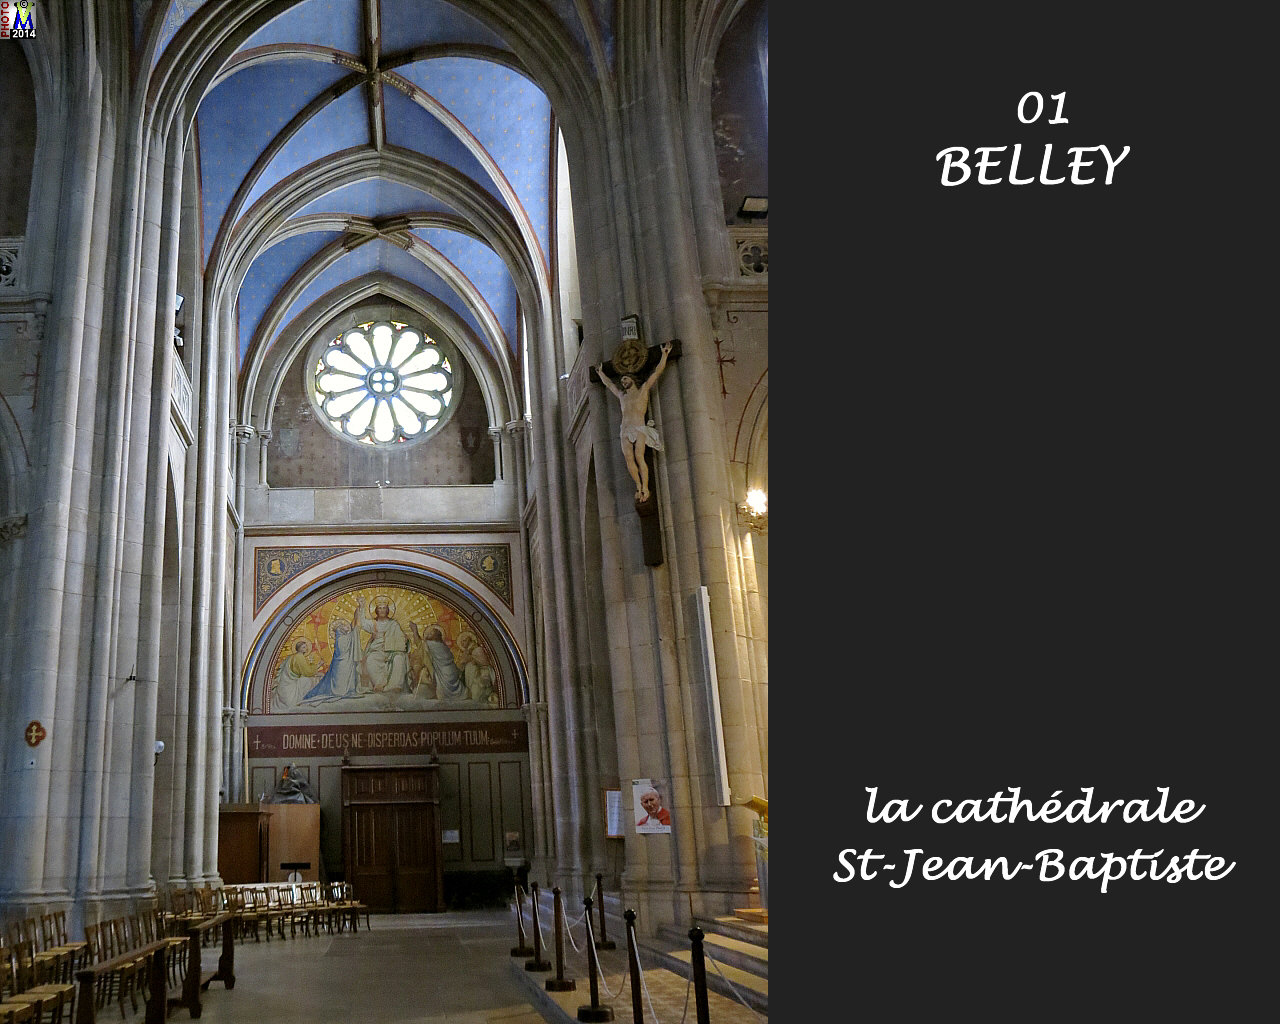 01BELLEY_cathedrale_222.jpg